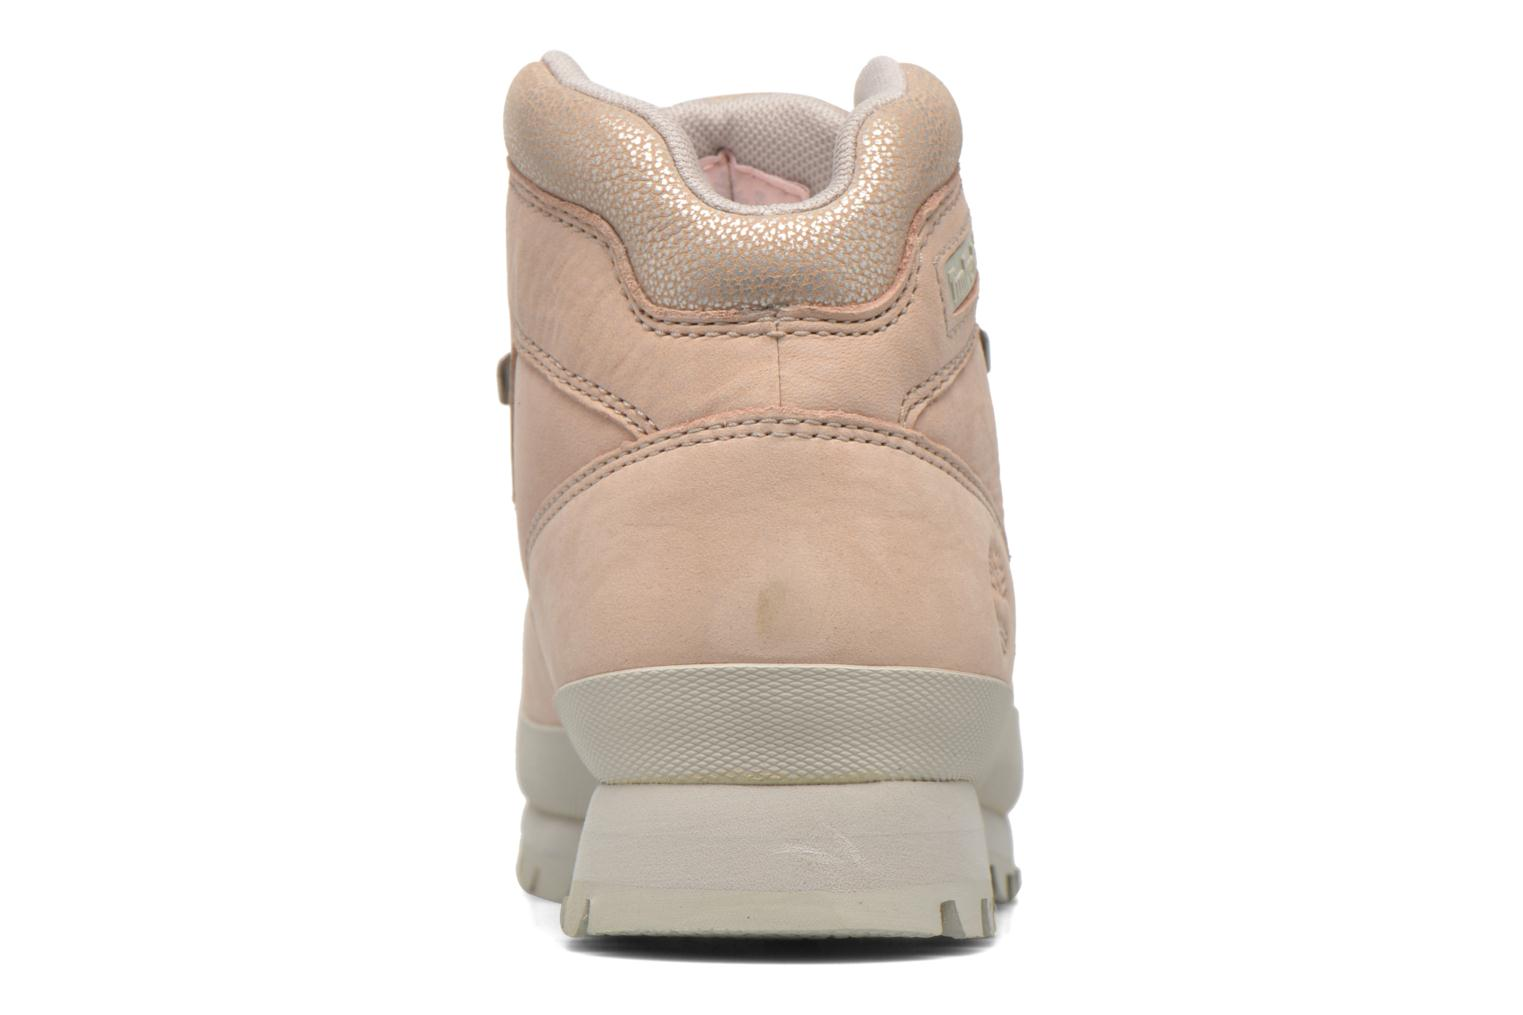 Euro Hiker Leather Cameo Rose Barefoot Buffed Nubuck